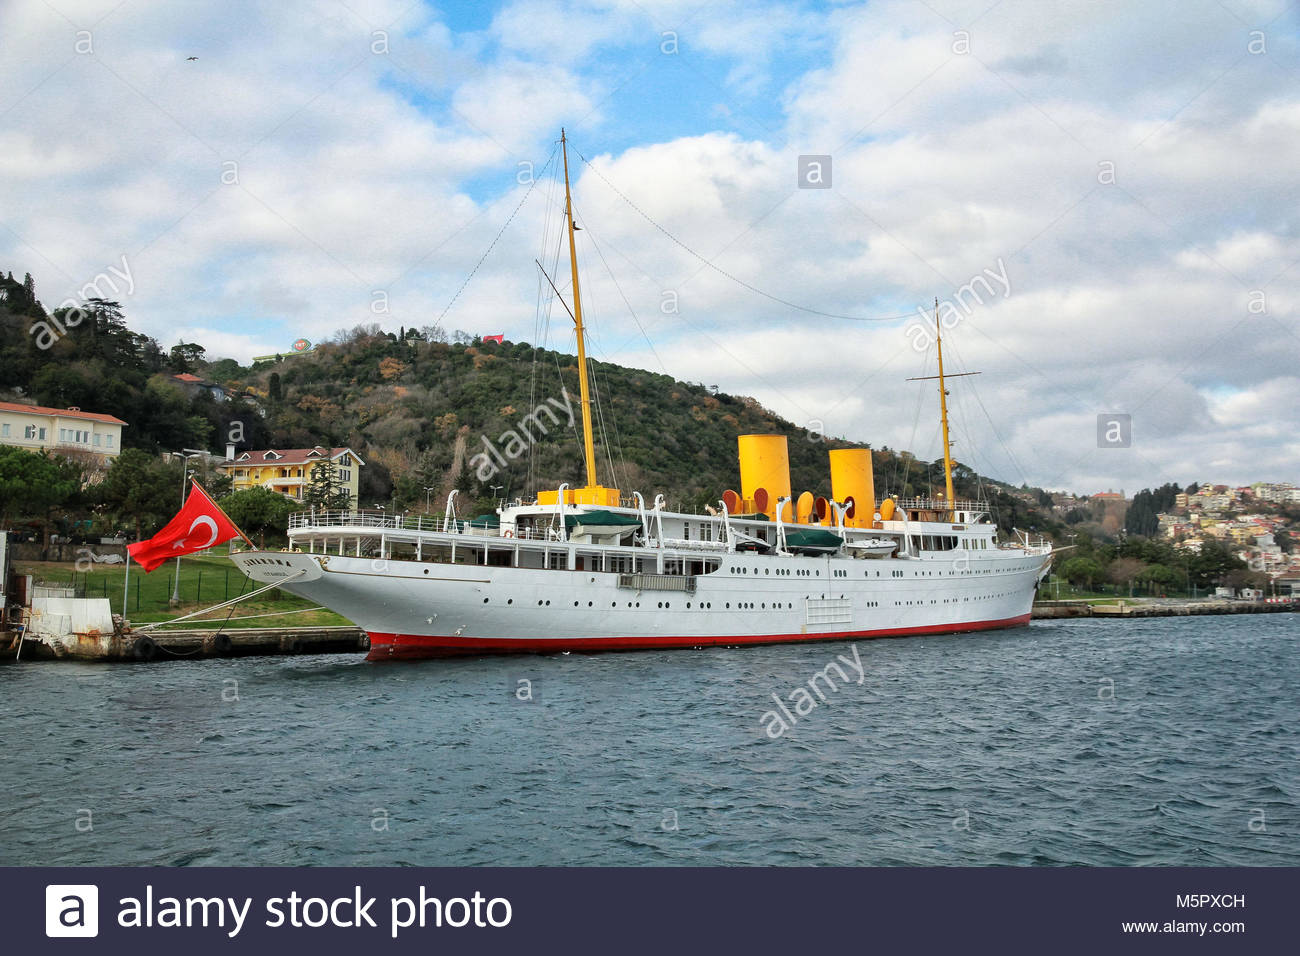 Istanbul, Turkey-December 12, 2015 -A beautiful white ship with yellow pipes and a Turkish flag on the rostrum is - Stock Image